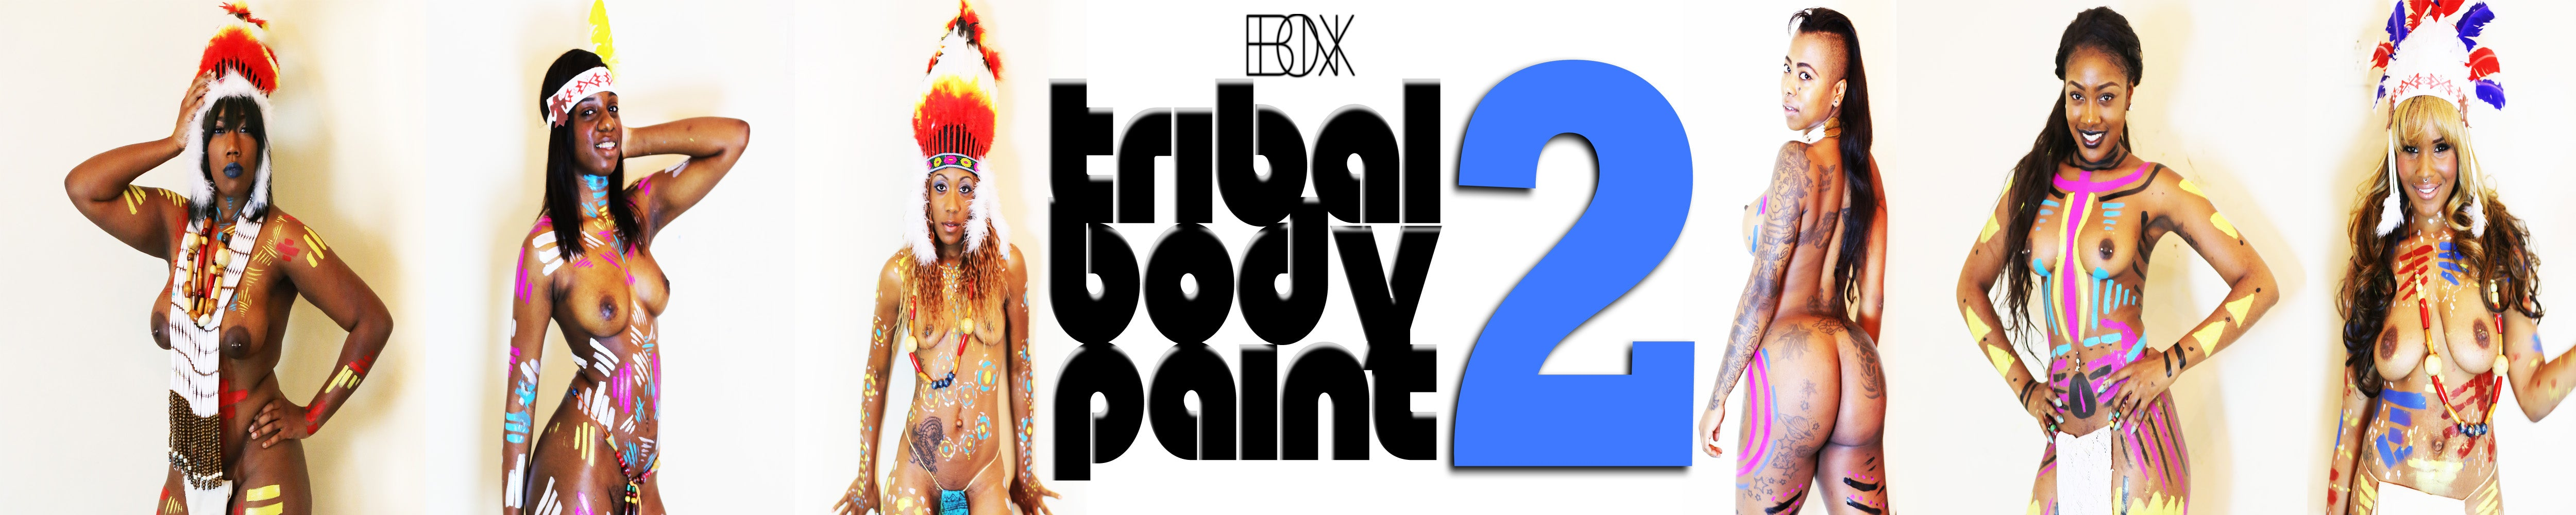 TRIBAL BODY PAINT #2